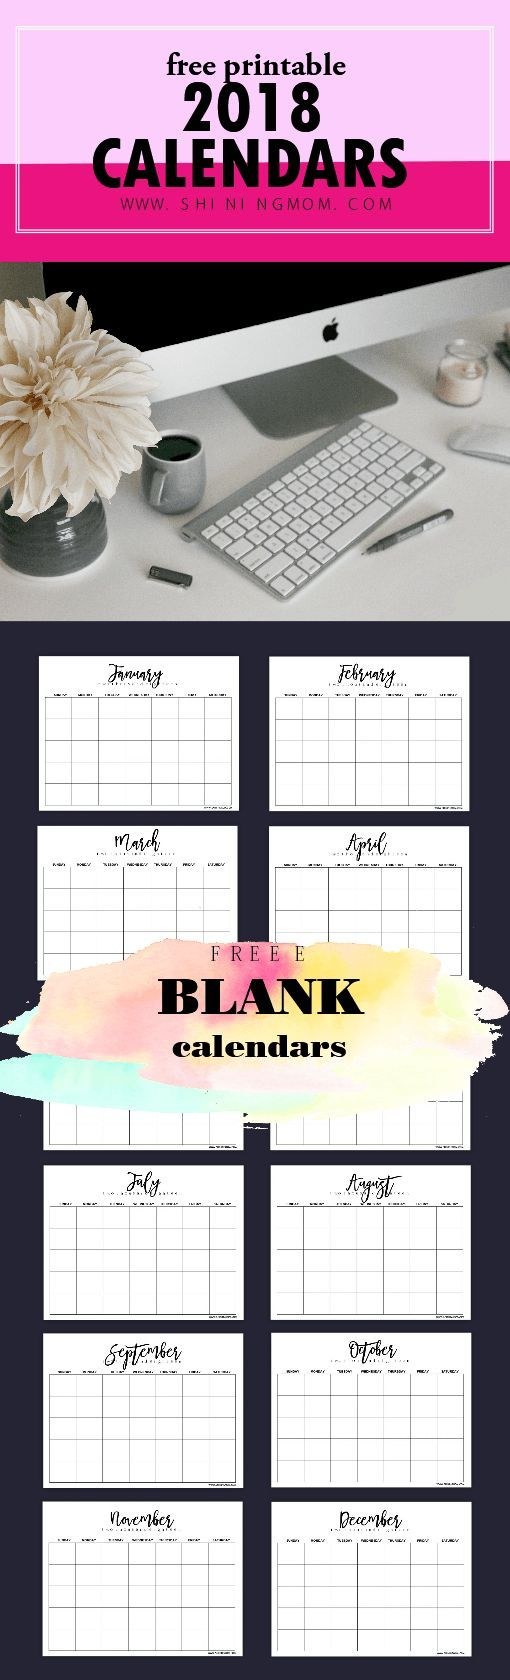 Get this awesome free editable blank calendar 2018 templates now! #editablecalendar #2018calendar #calendar2018printable